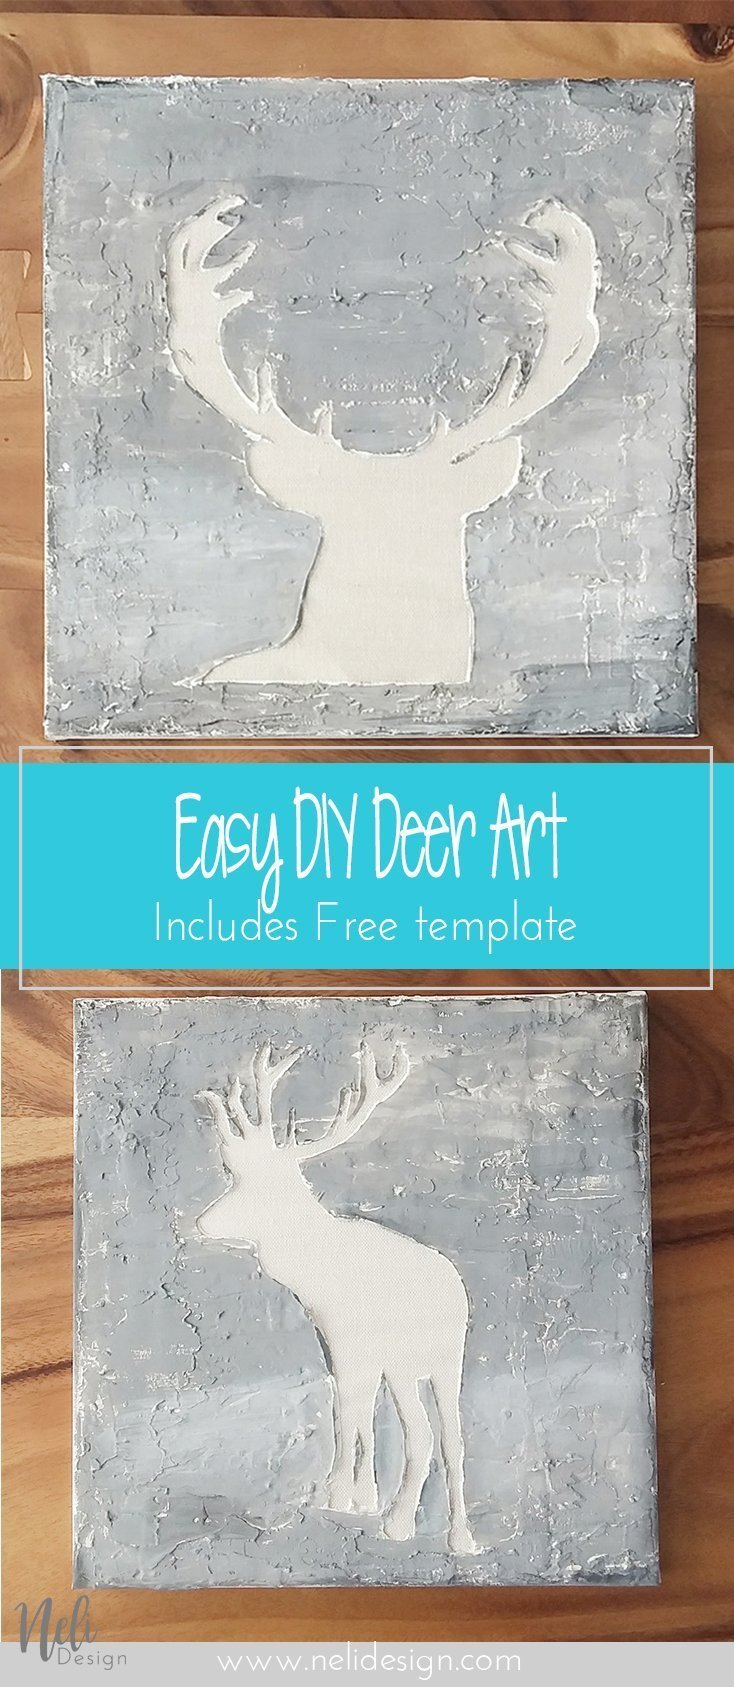 Pinterrest image saying Easy DIY Deer Art Includes free template